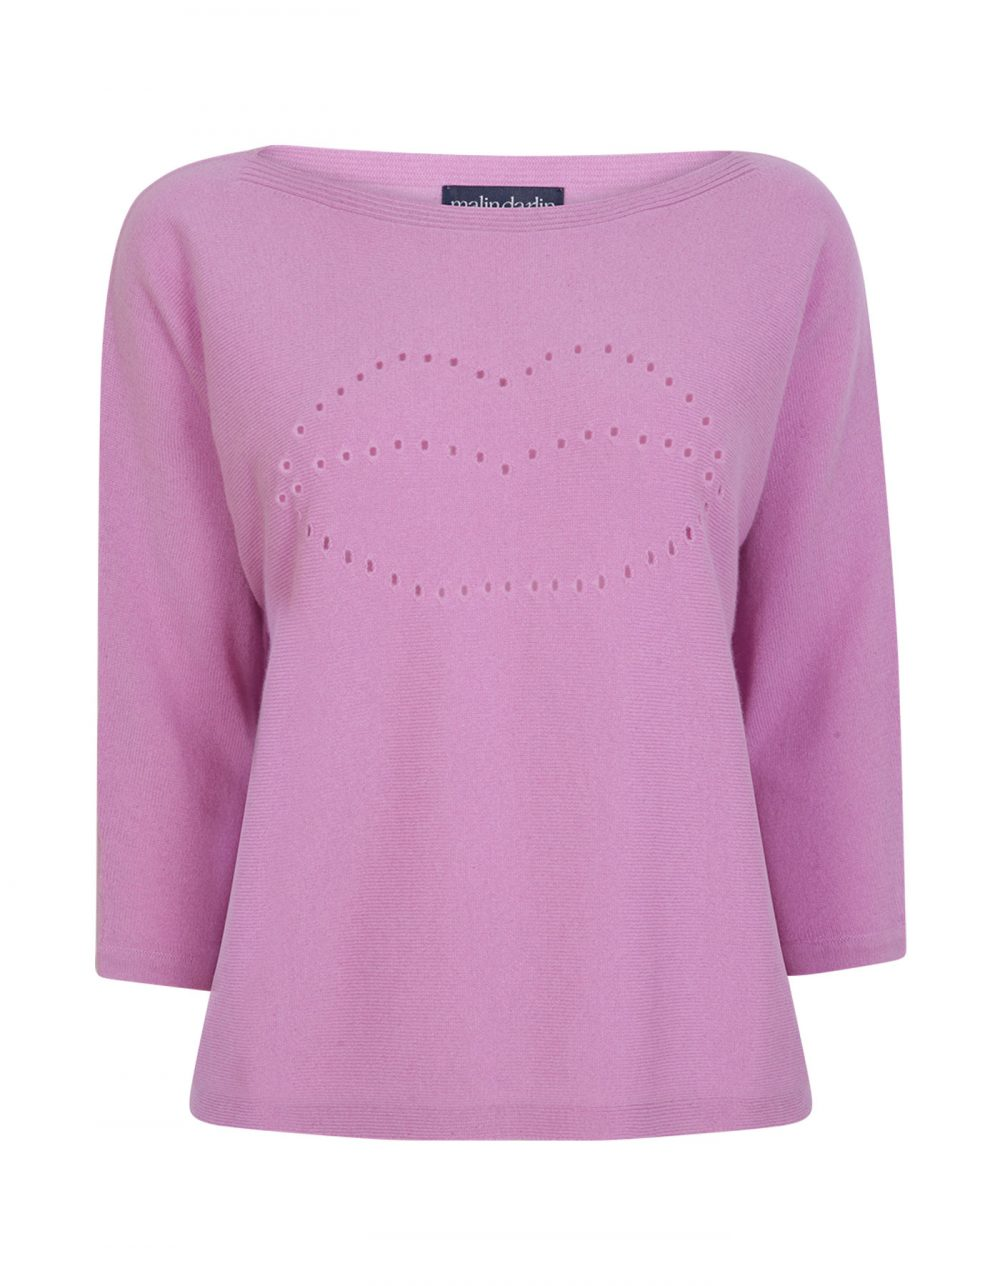 Lips pink cashmere jumpers at malin darlin.